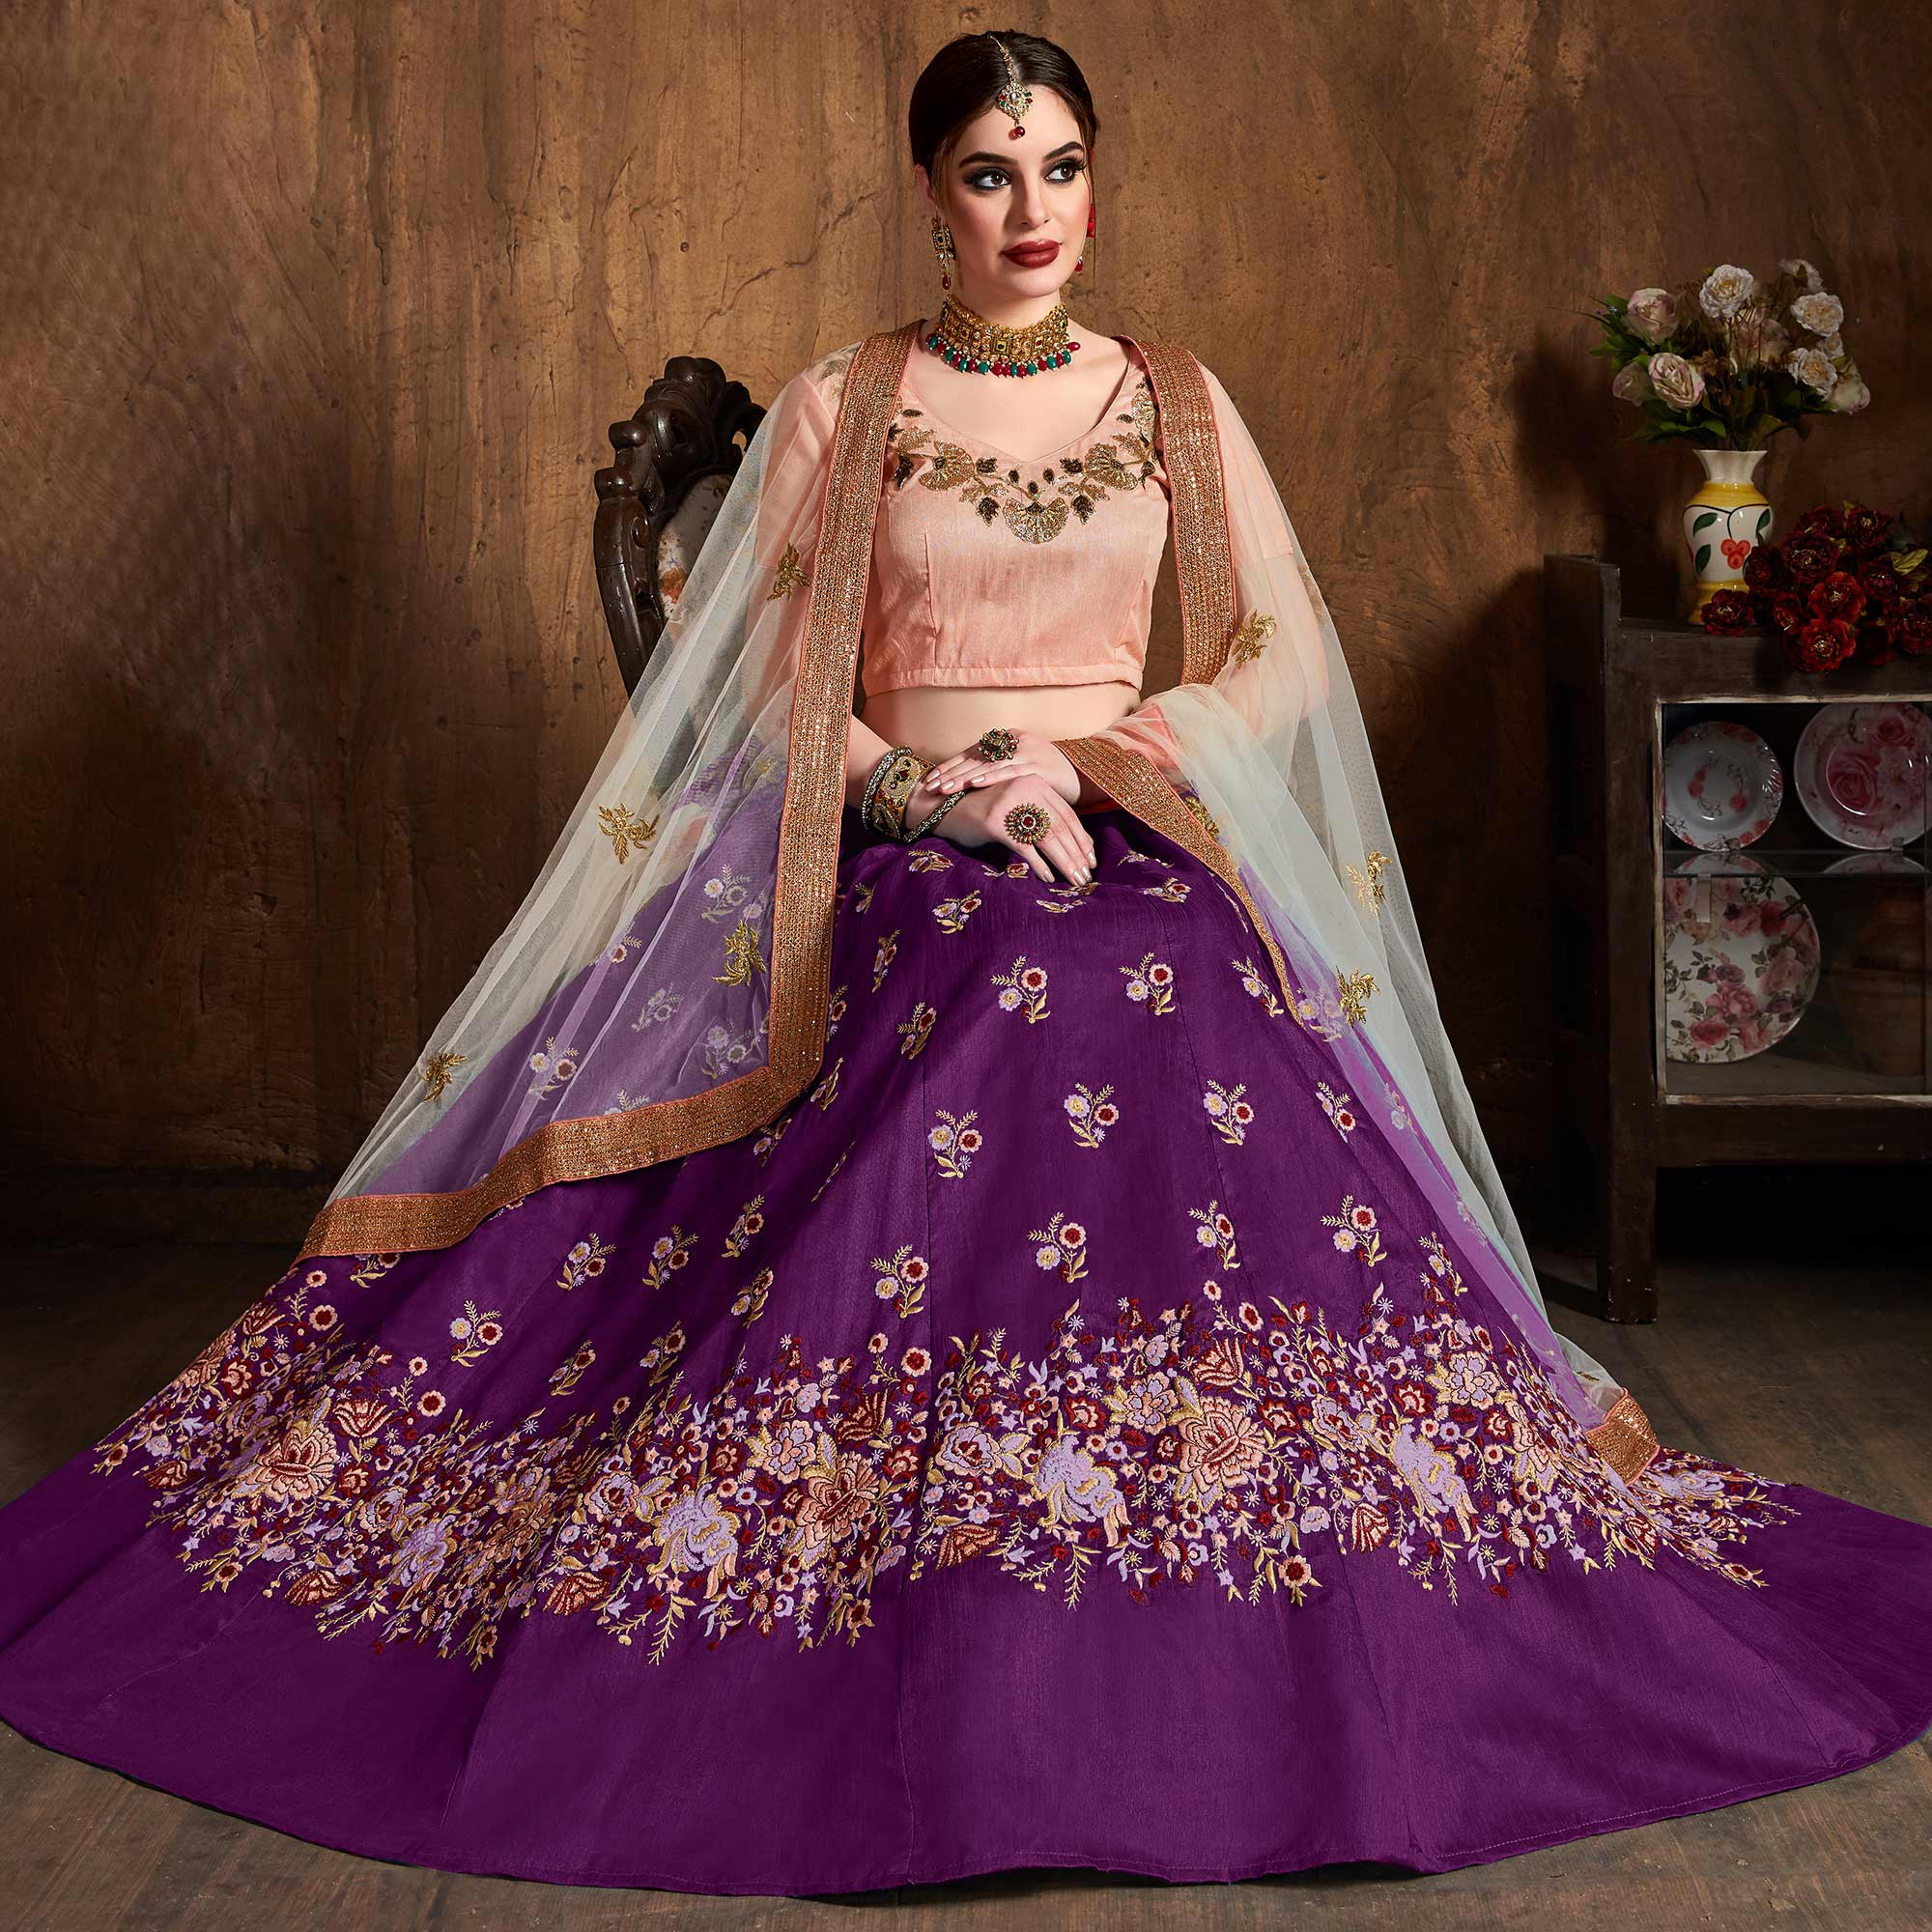 Stunning Purple Colored Floral Embroidered Banglori Silk Lehenga Choli